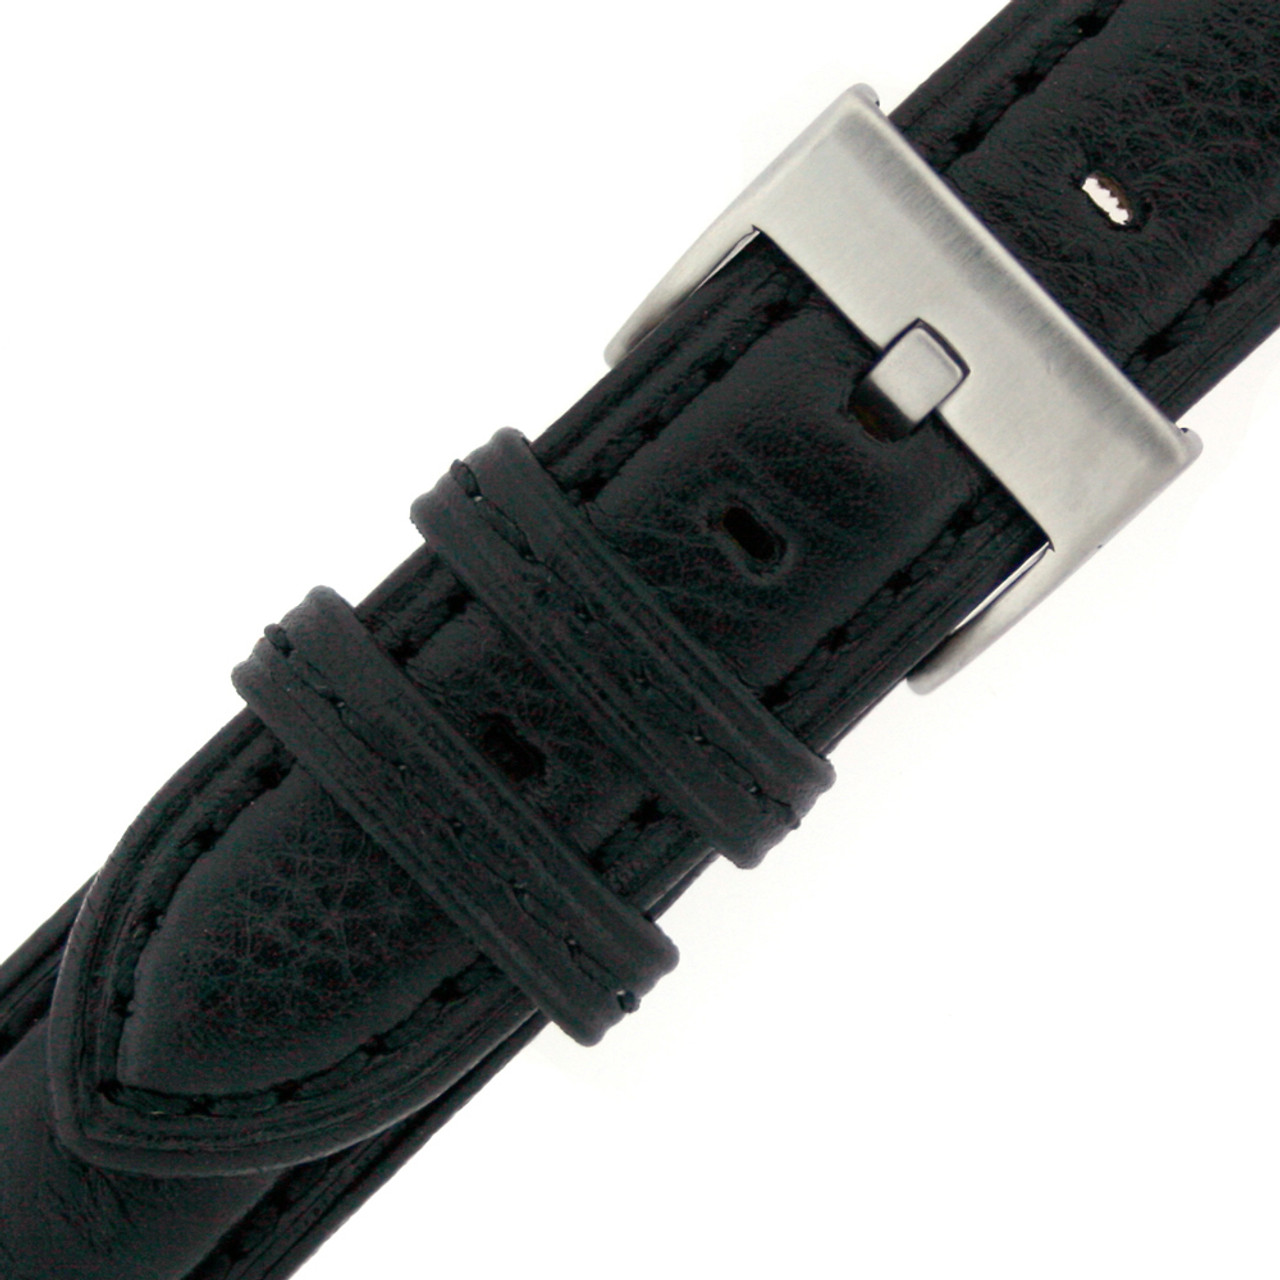 Leather Watch band in black by Tech Swiss - Buckle View